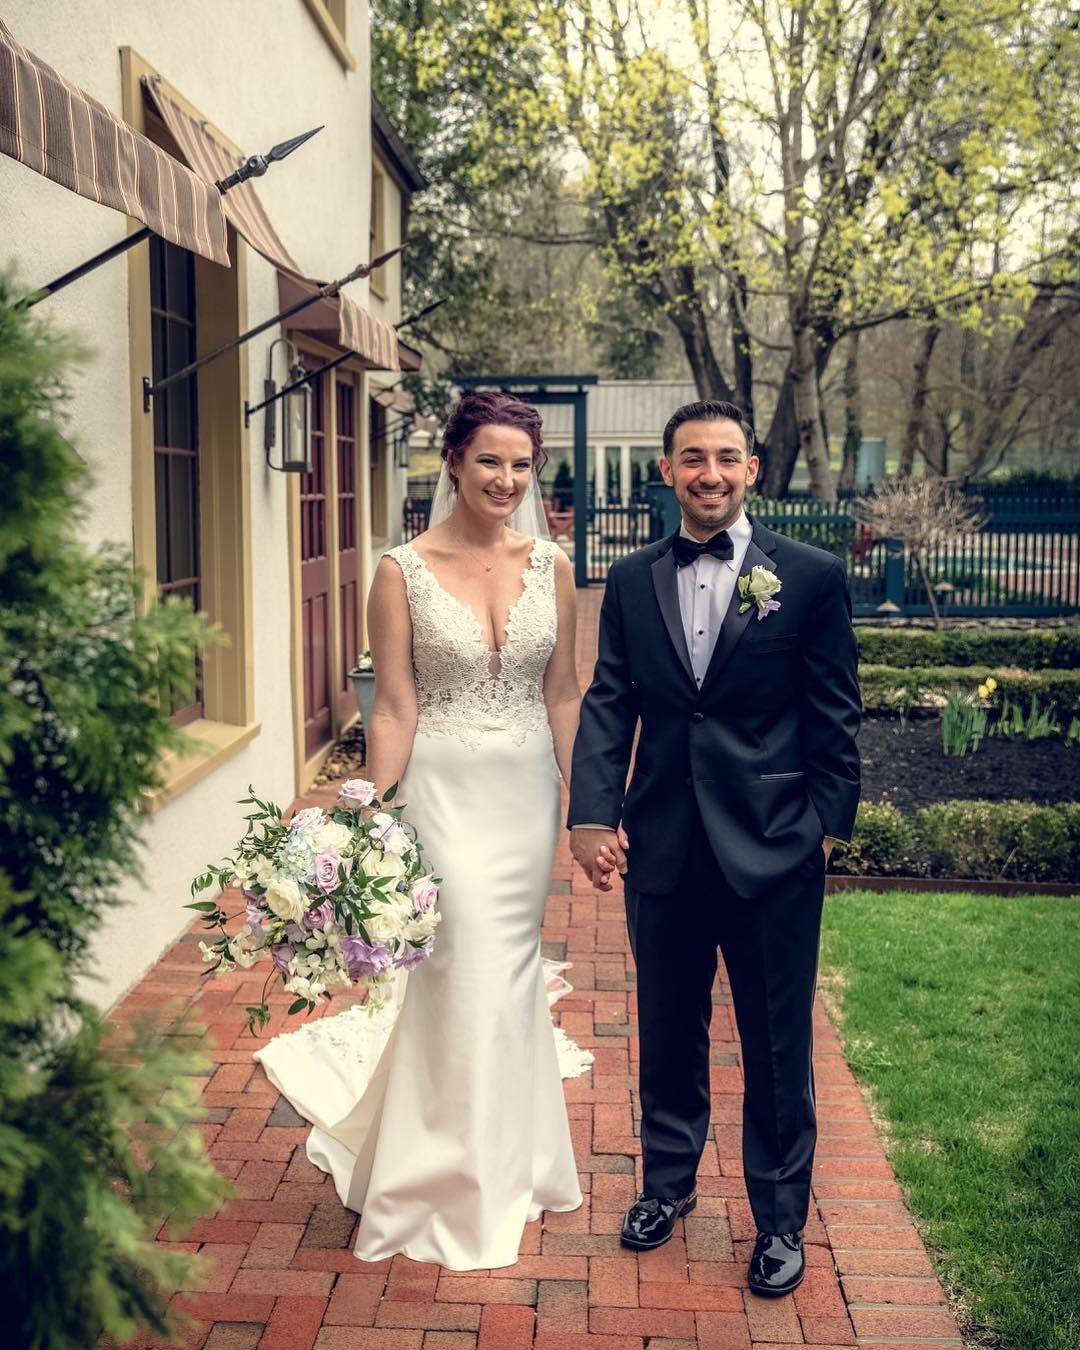 Congrats to Amanda & Anthony on such a beautiful, chic, fun and exciting wedding at Hotel Du Village in New Hope PA!!